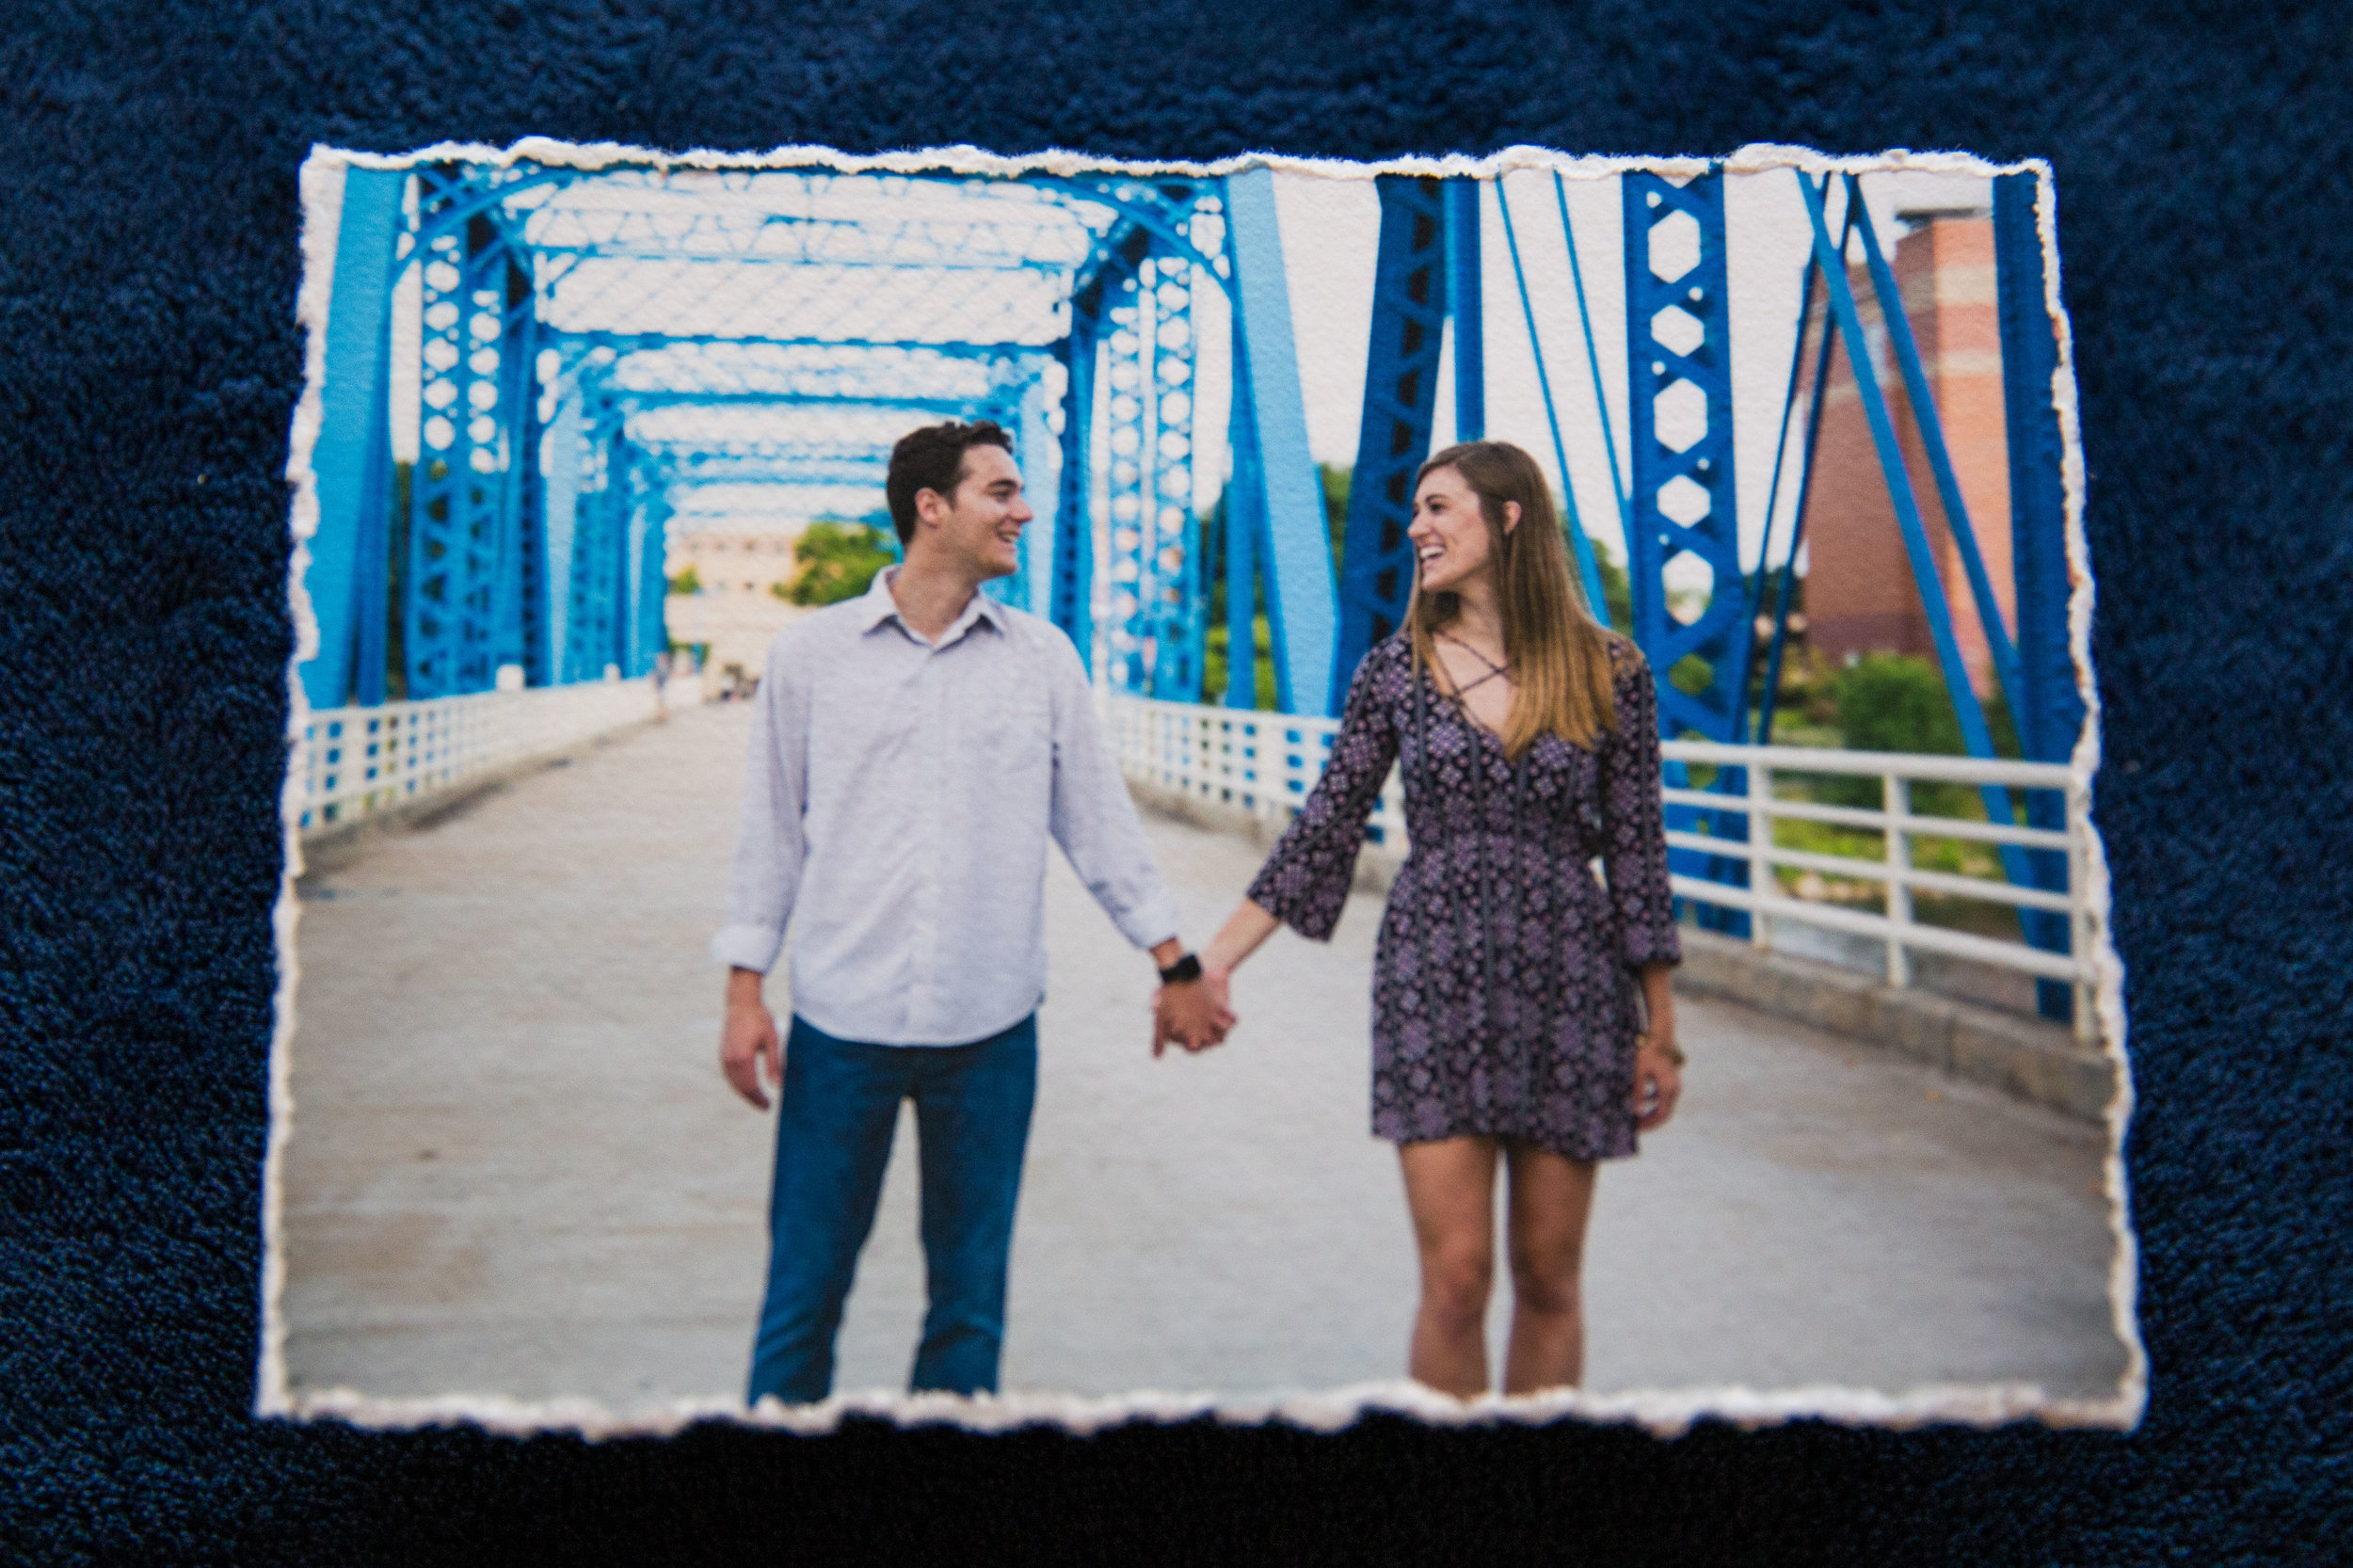 """A Grand Rapids couple hand-in-hand on the """"blue bridge"""". Shown here on a 5"""" x 7"""" deckled print, printed on museum-quality archival matte paper."""